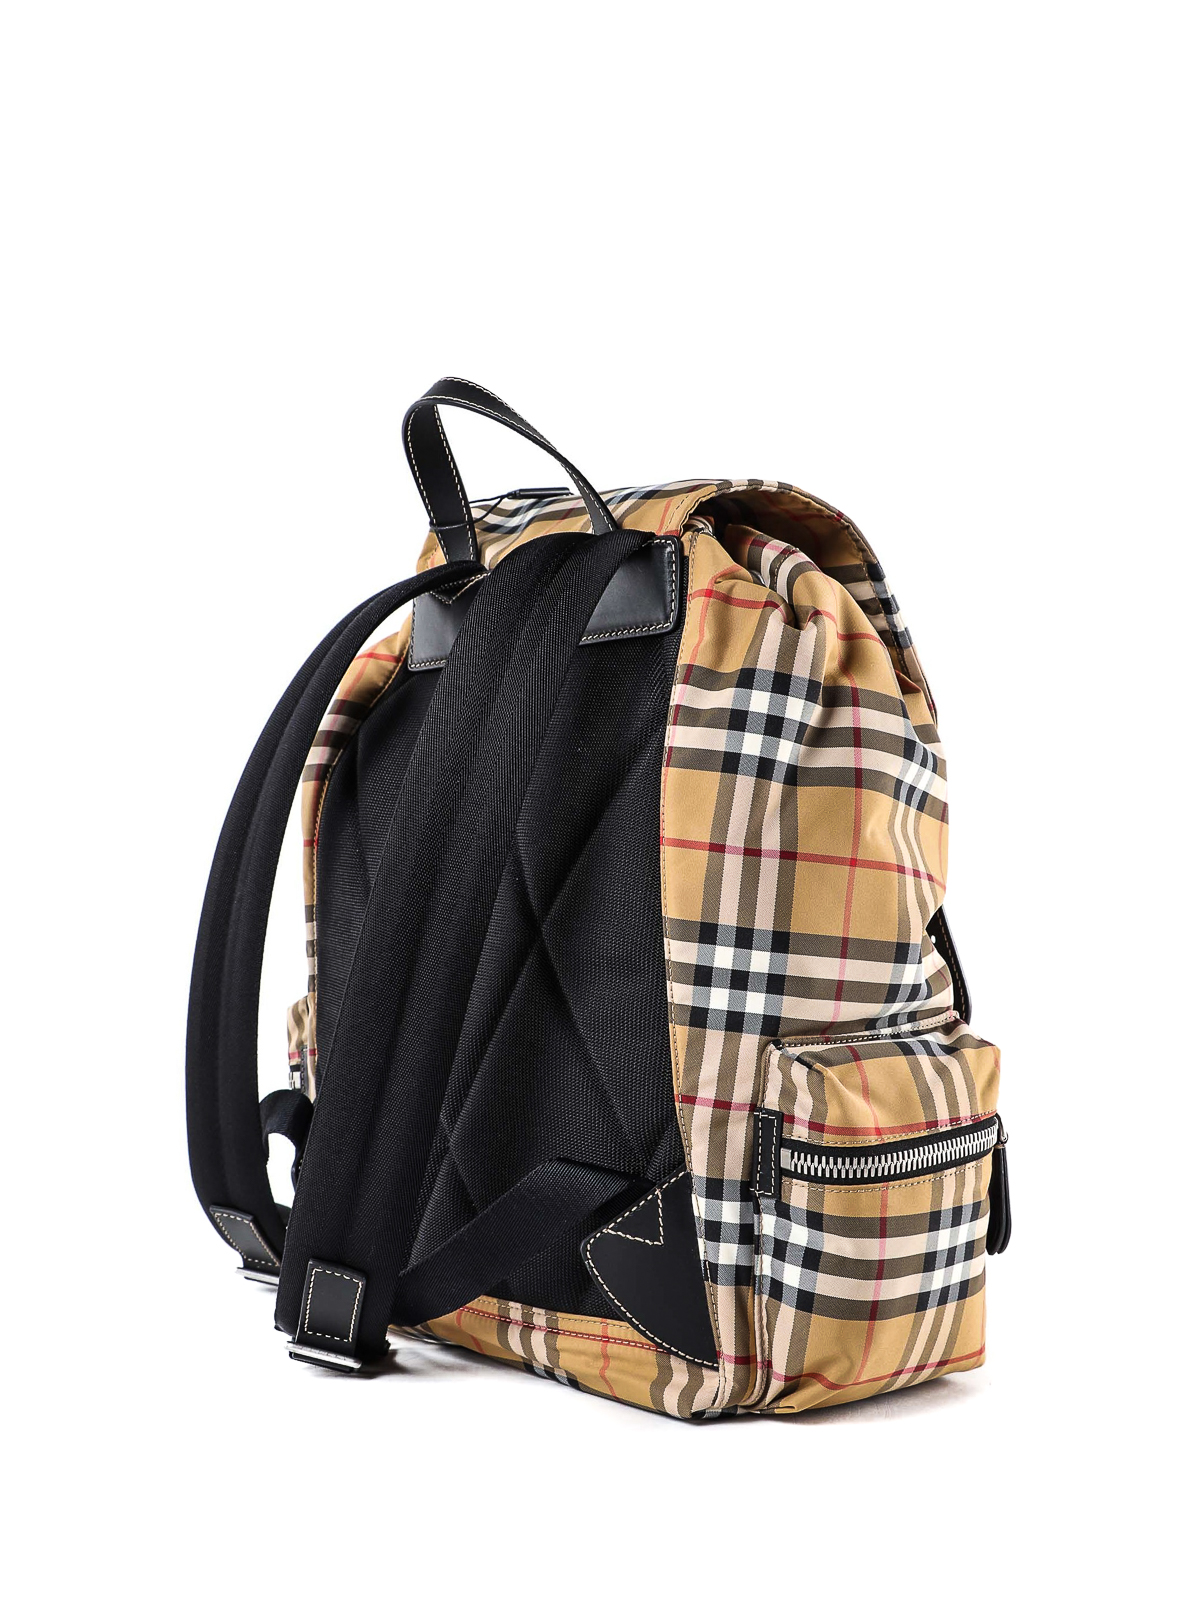 8e577b525b Burberry - Zaino The Large Rucksack in Vintage check - zaini - 8005141